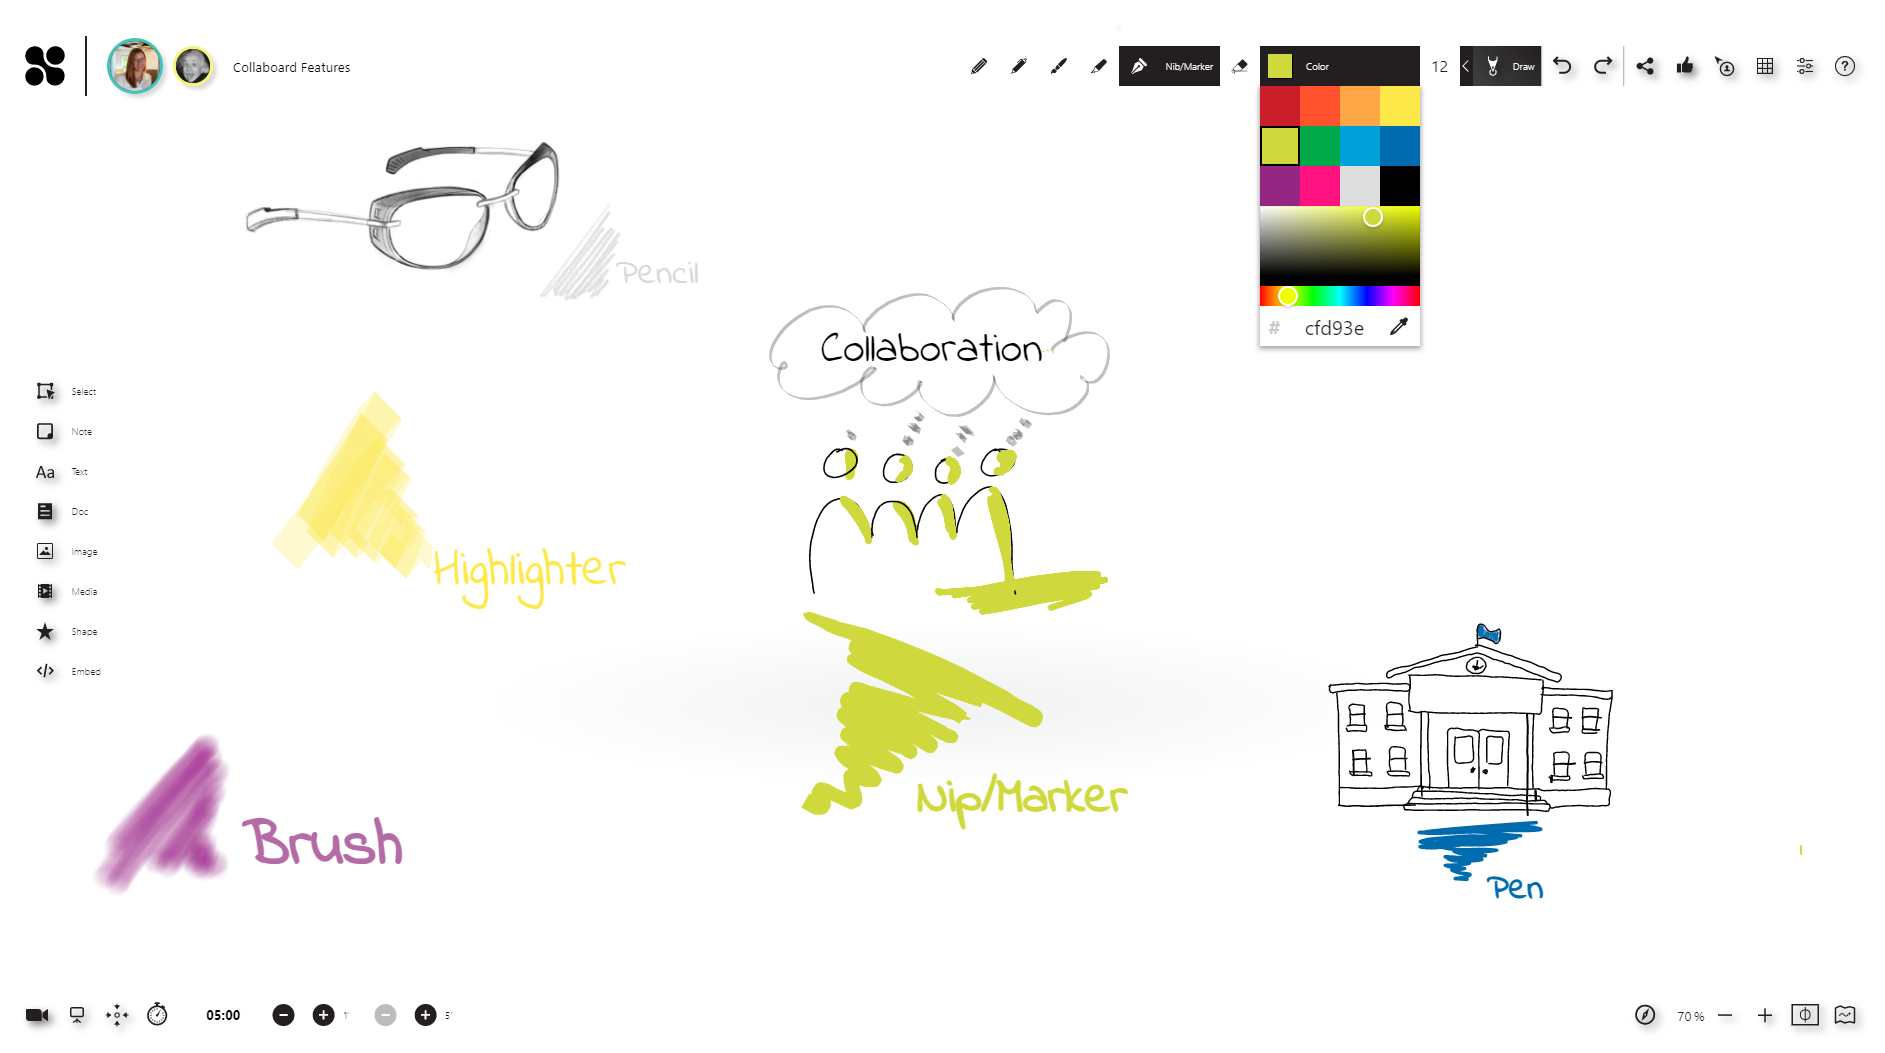 Smooth digital ink: You can draw using brushes, markers, pen, and pencil with your digital pen, e.g. from Microsoft, Wacom, and Apple. With this, analog handwriting is replaced.